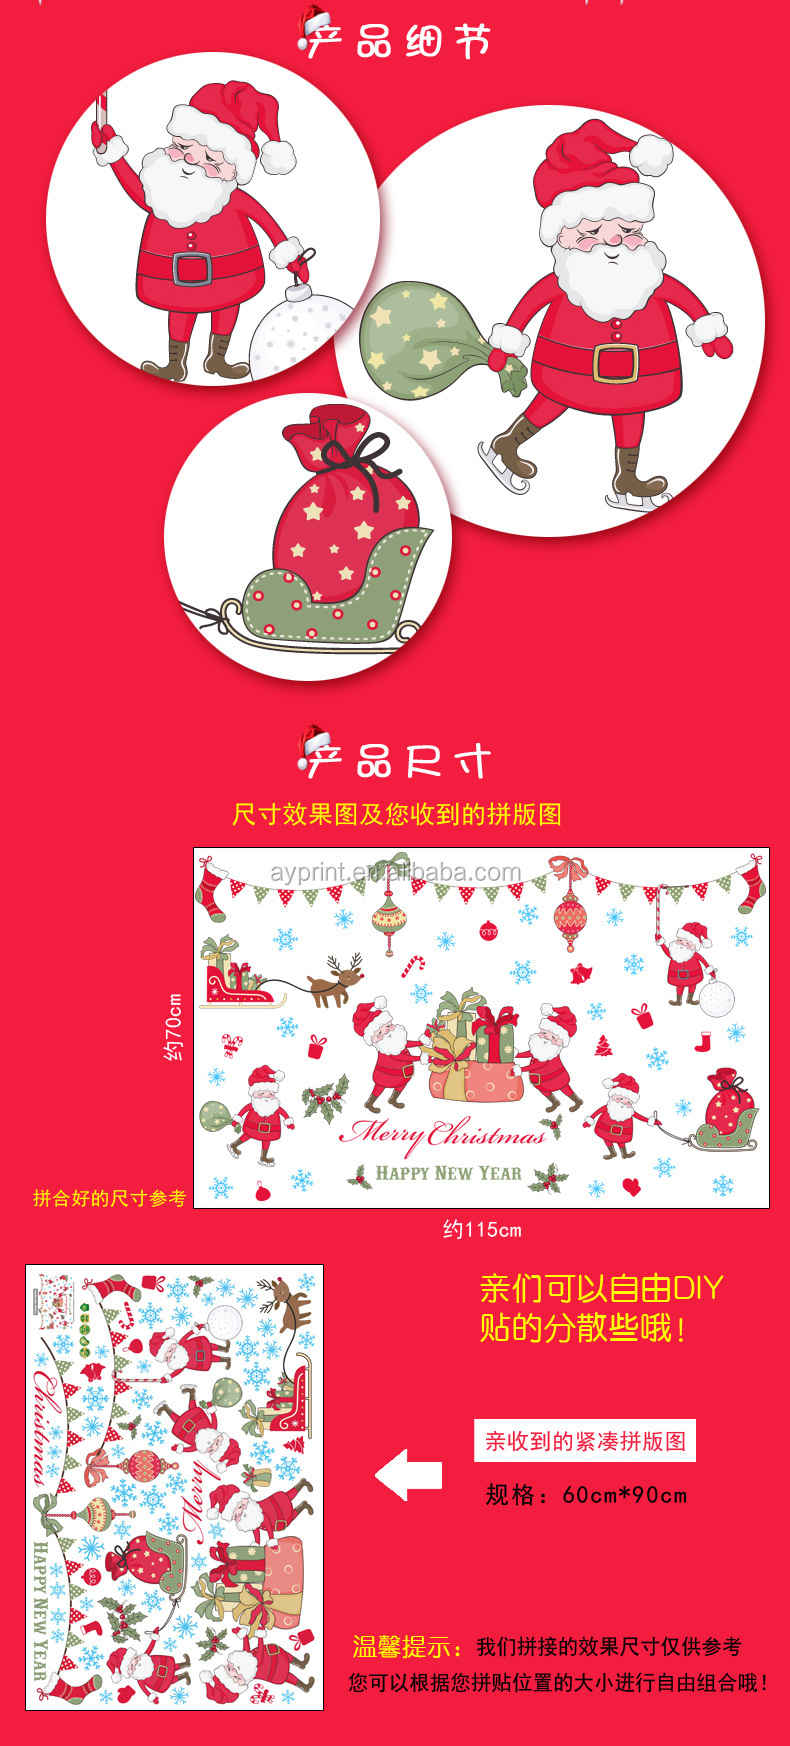 Sk9099 new year merry christmas wall sticker kid nursery room diy sk9099 new year merry christmas wall sticker kid nursery room diy decorative removable wall sticker amipublicfo Gallery